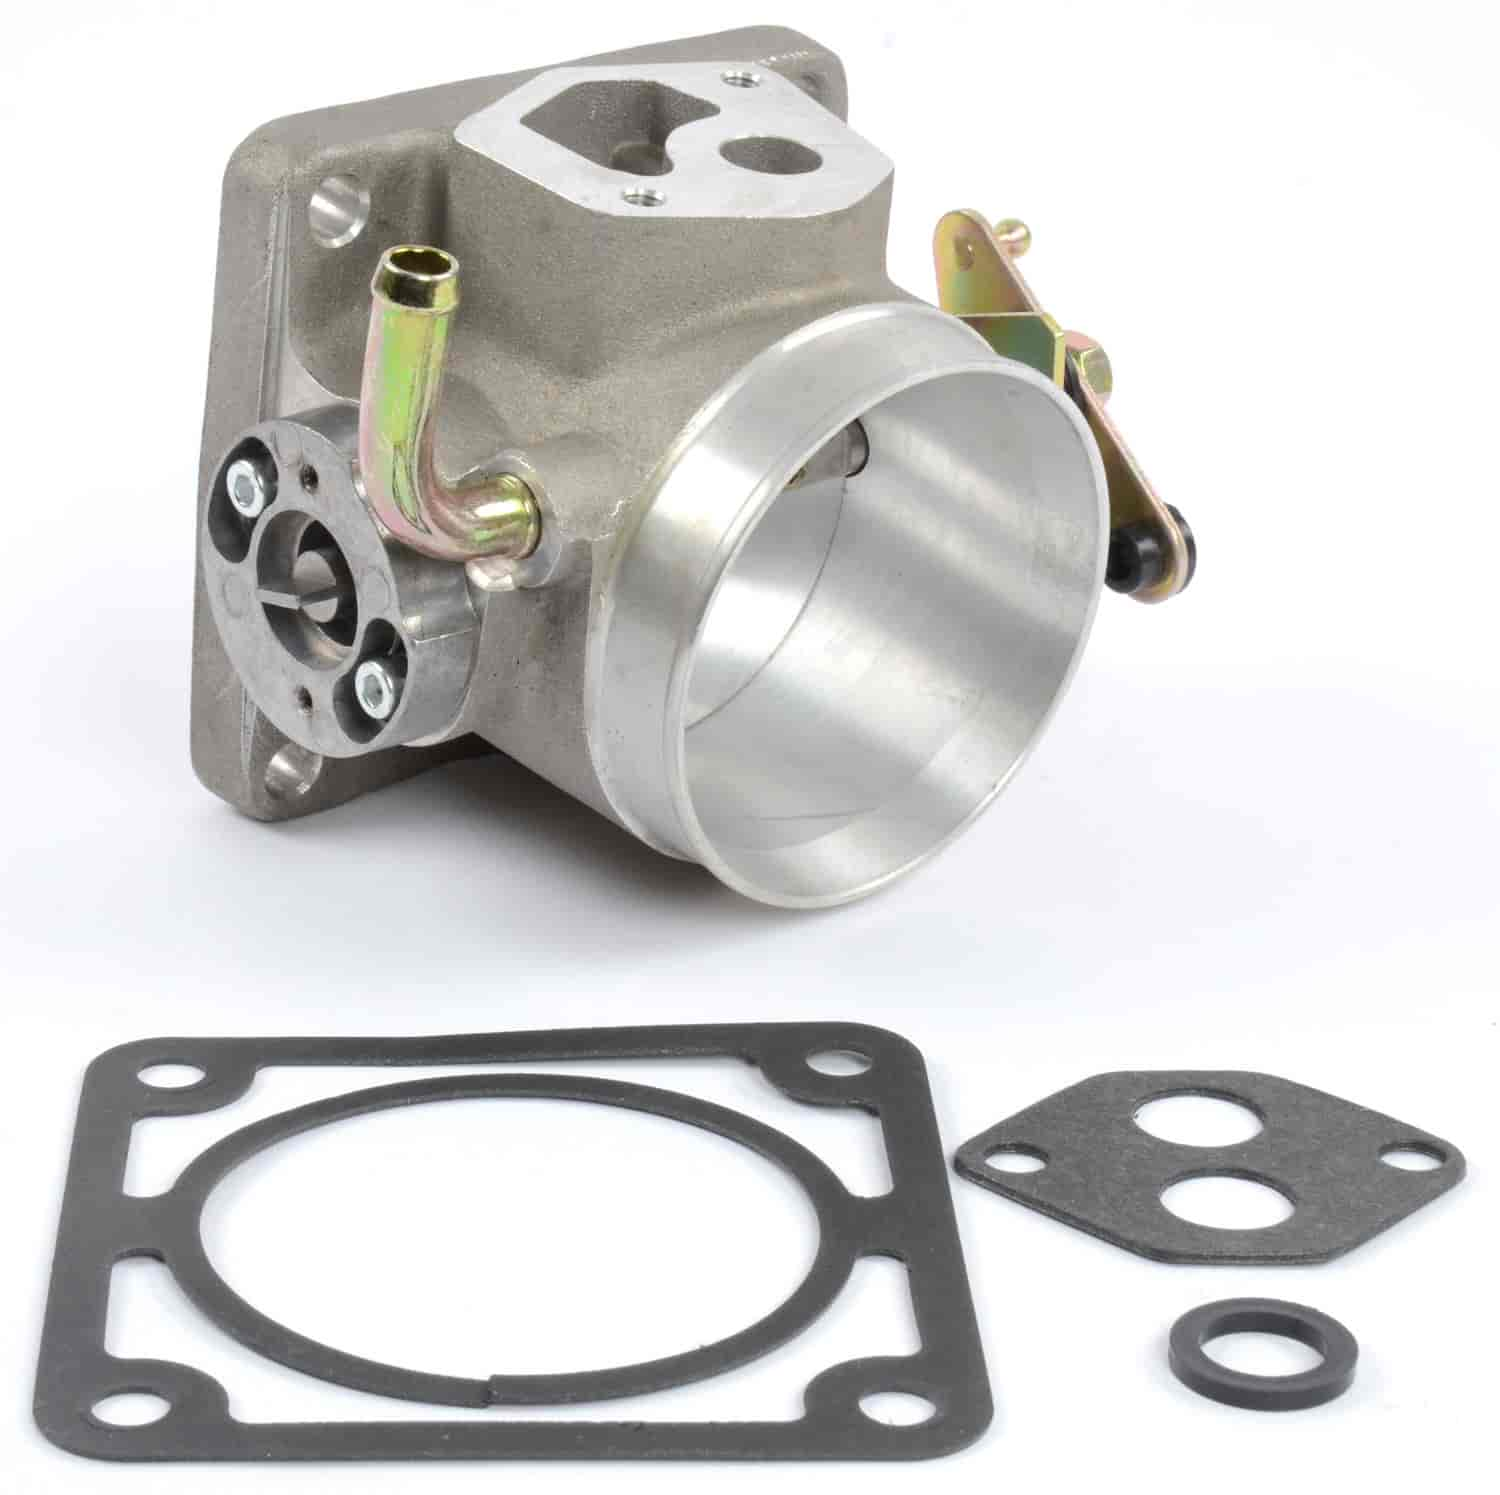 Jegs 14512 75mm Throttle Body For 1986 1993 Ford Mustang 50l 5 0 Carb Wiring Harness